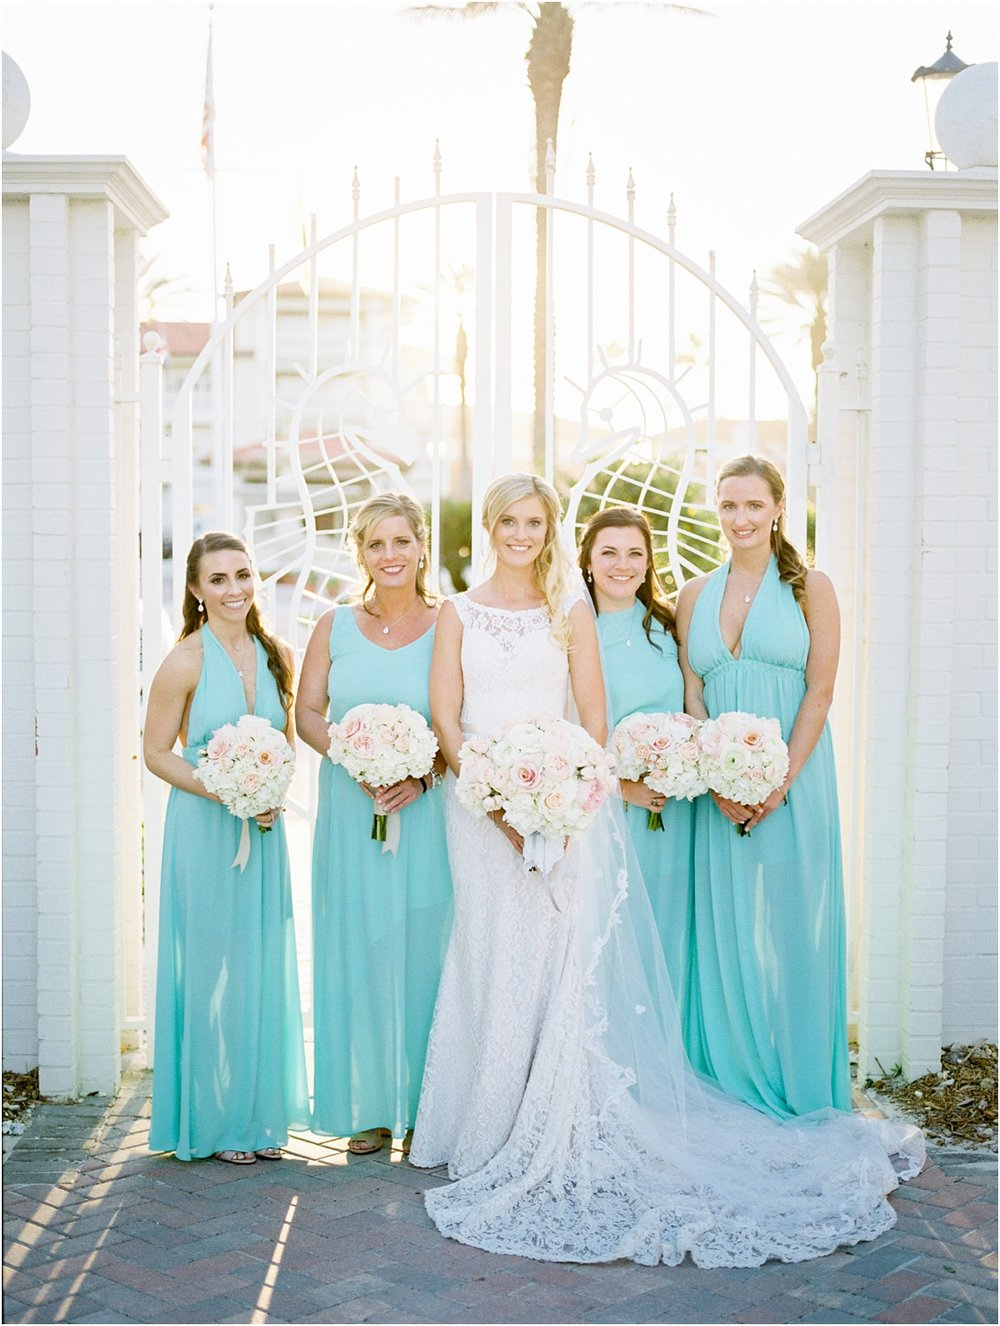 Lisa Silva Photography- Ponte Vedra Beach and Jacksonville, Florida Fine Art Film Wedding Photography- Wedding at the Ponte Vedra Inn and Club_0026.jpg